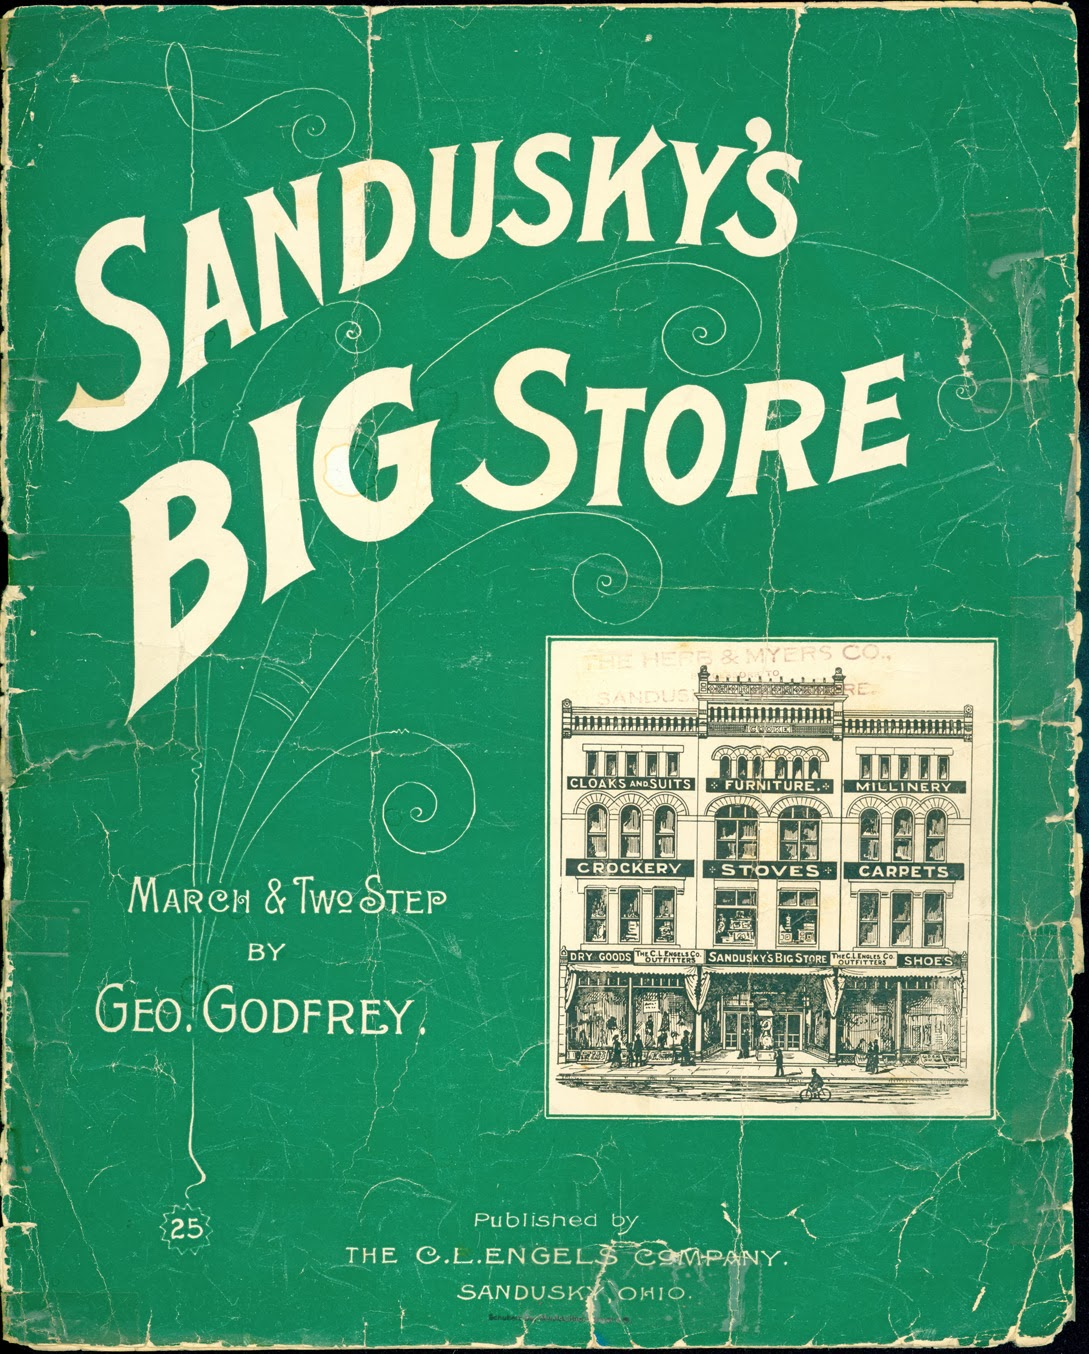 Mr. Godfreyu0027s Musical Composition Entitled Sanduskyu0027s Big Store March And  Two Step Was Published By The C.L. Engels Company In Sandusky, Ohio.